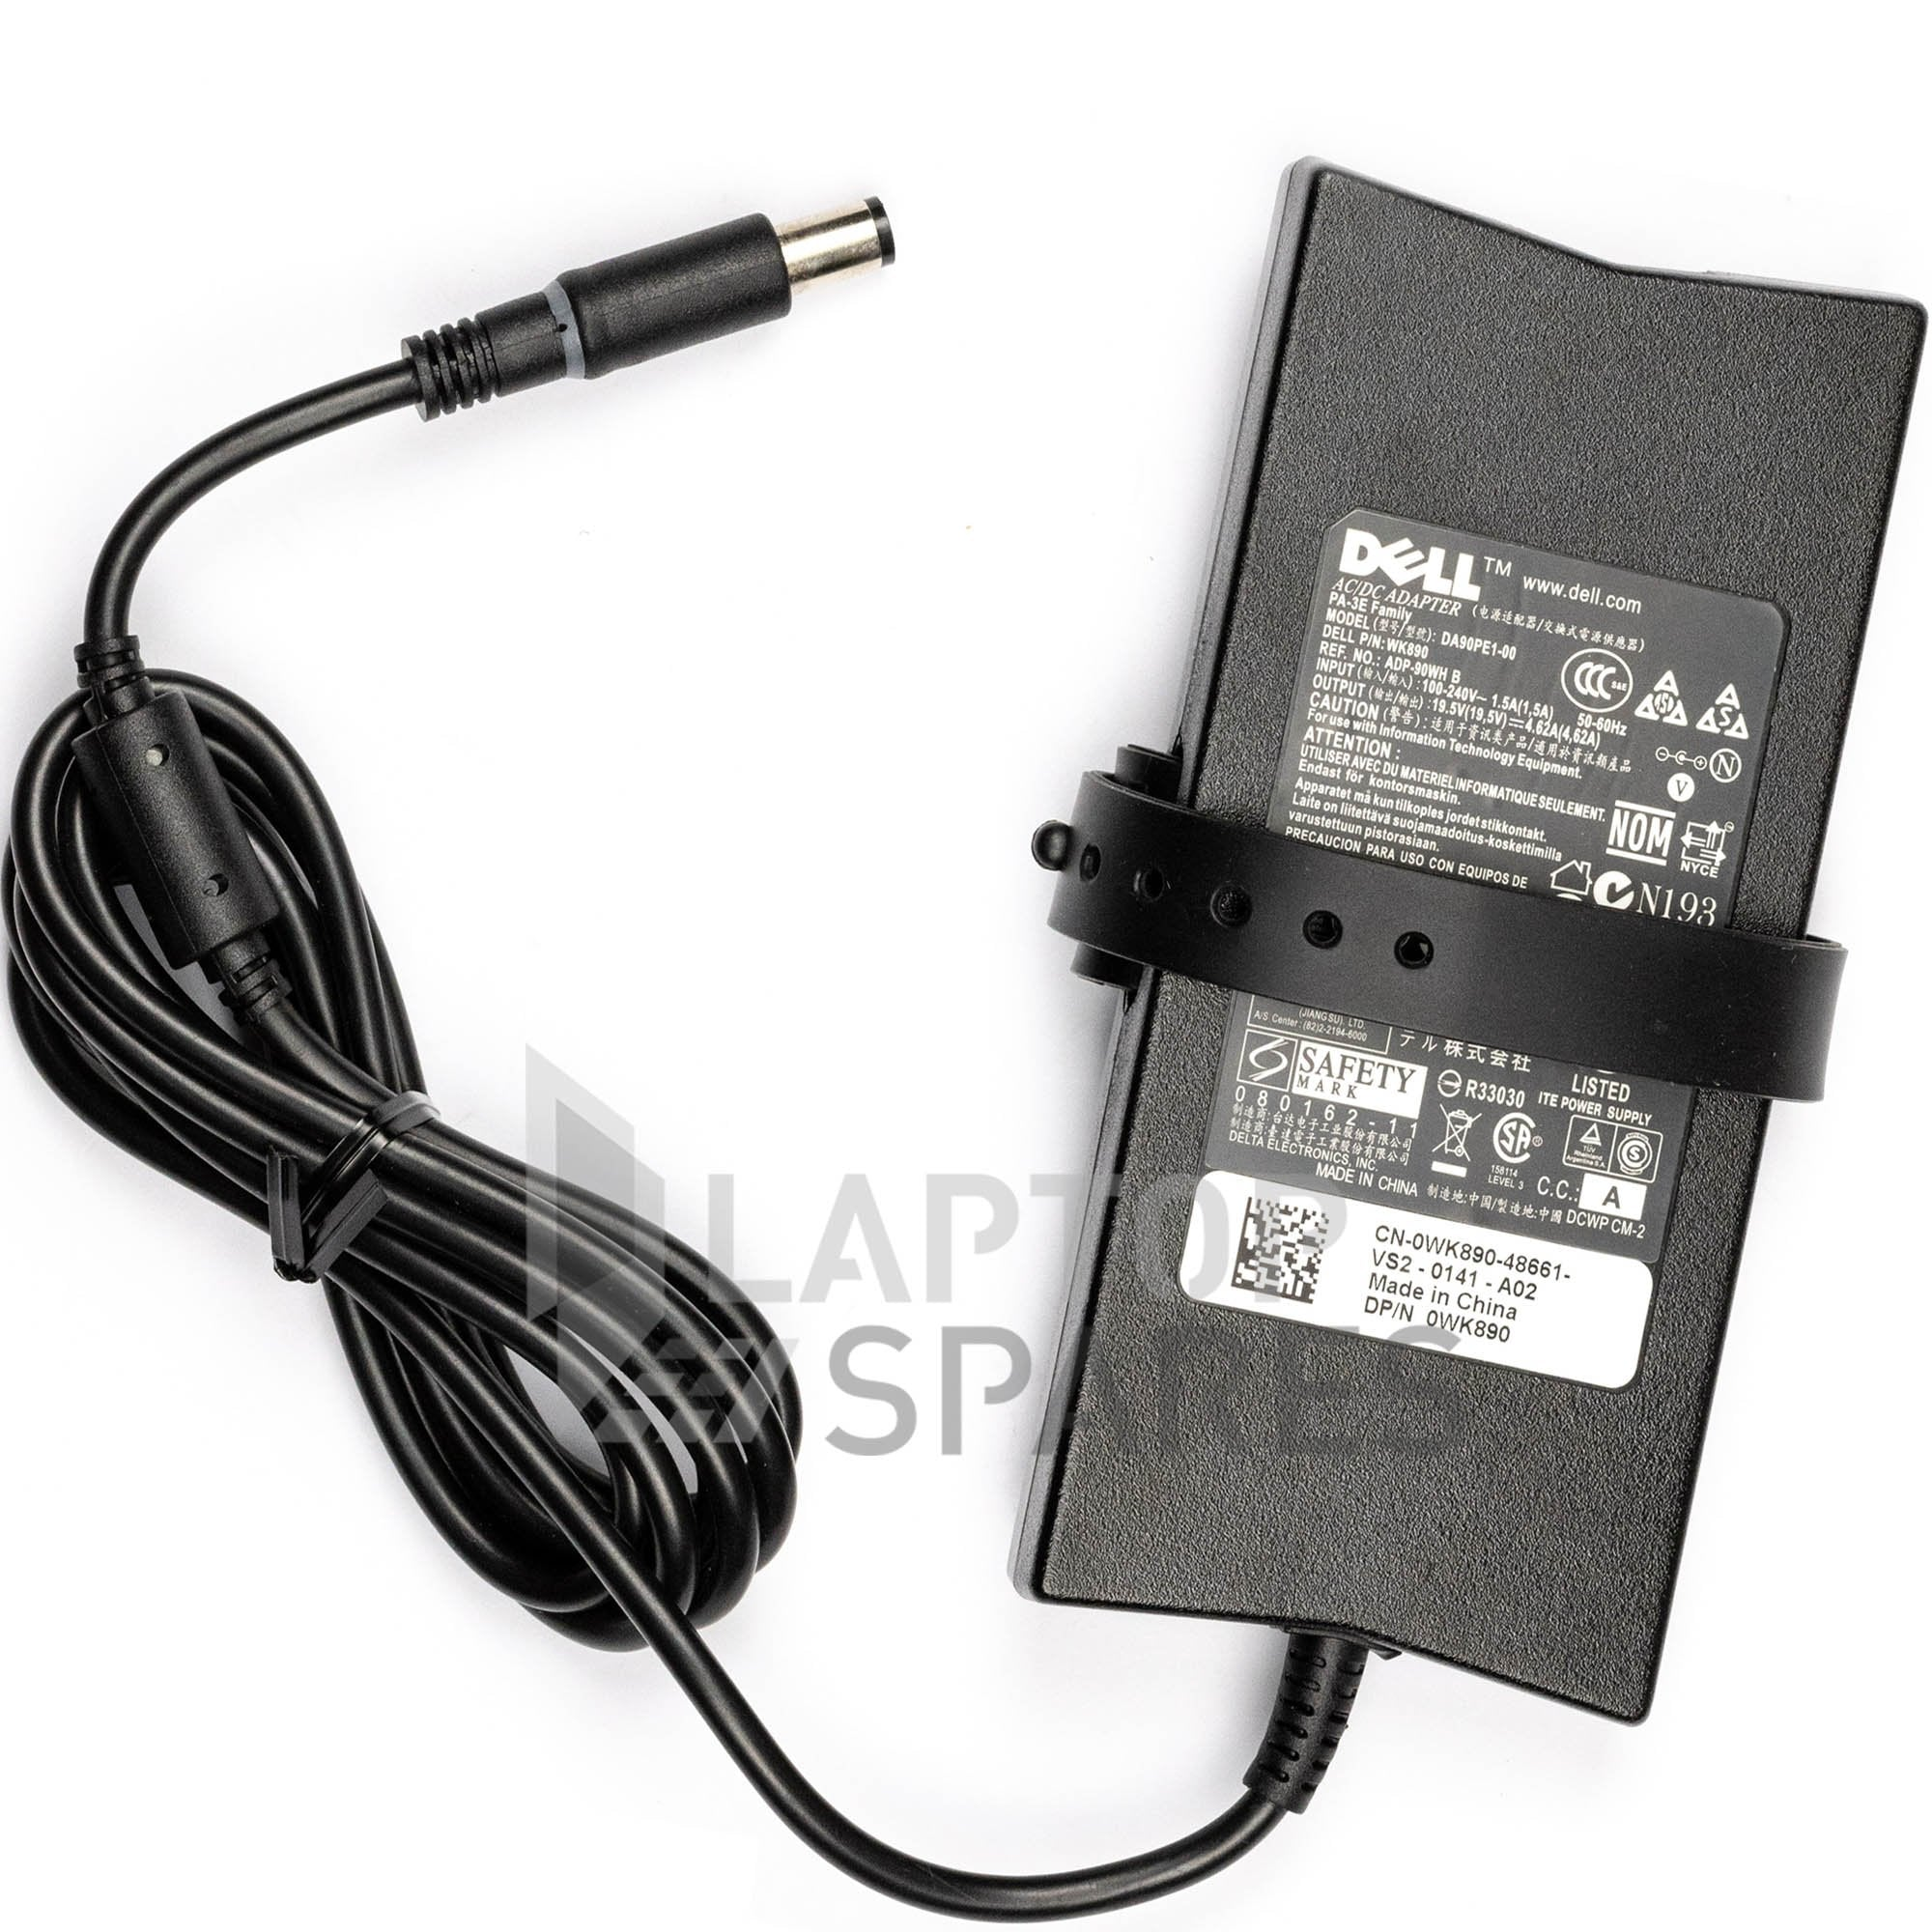 Dell XPS 15z L511z Laptop Slim AC Adapter Charger